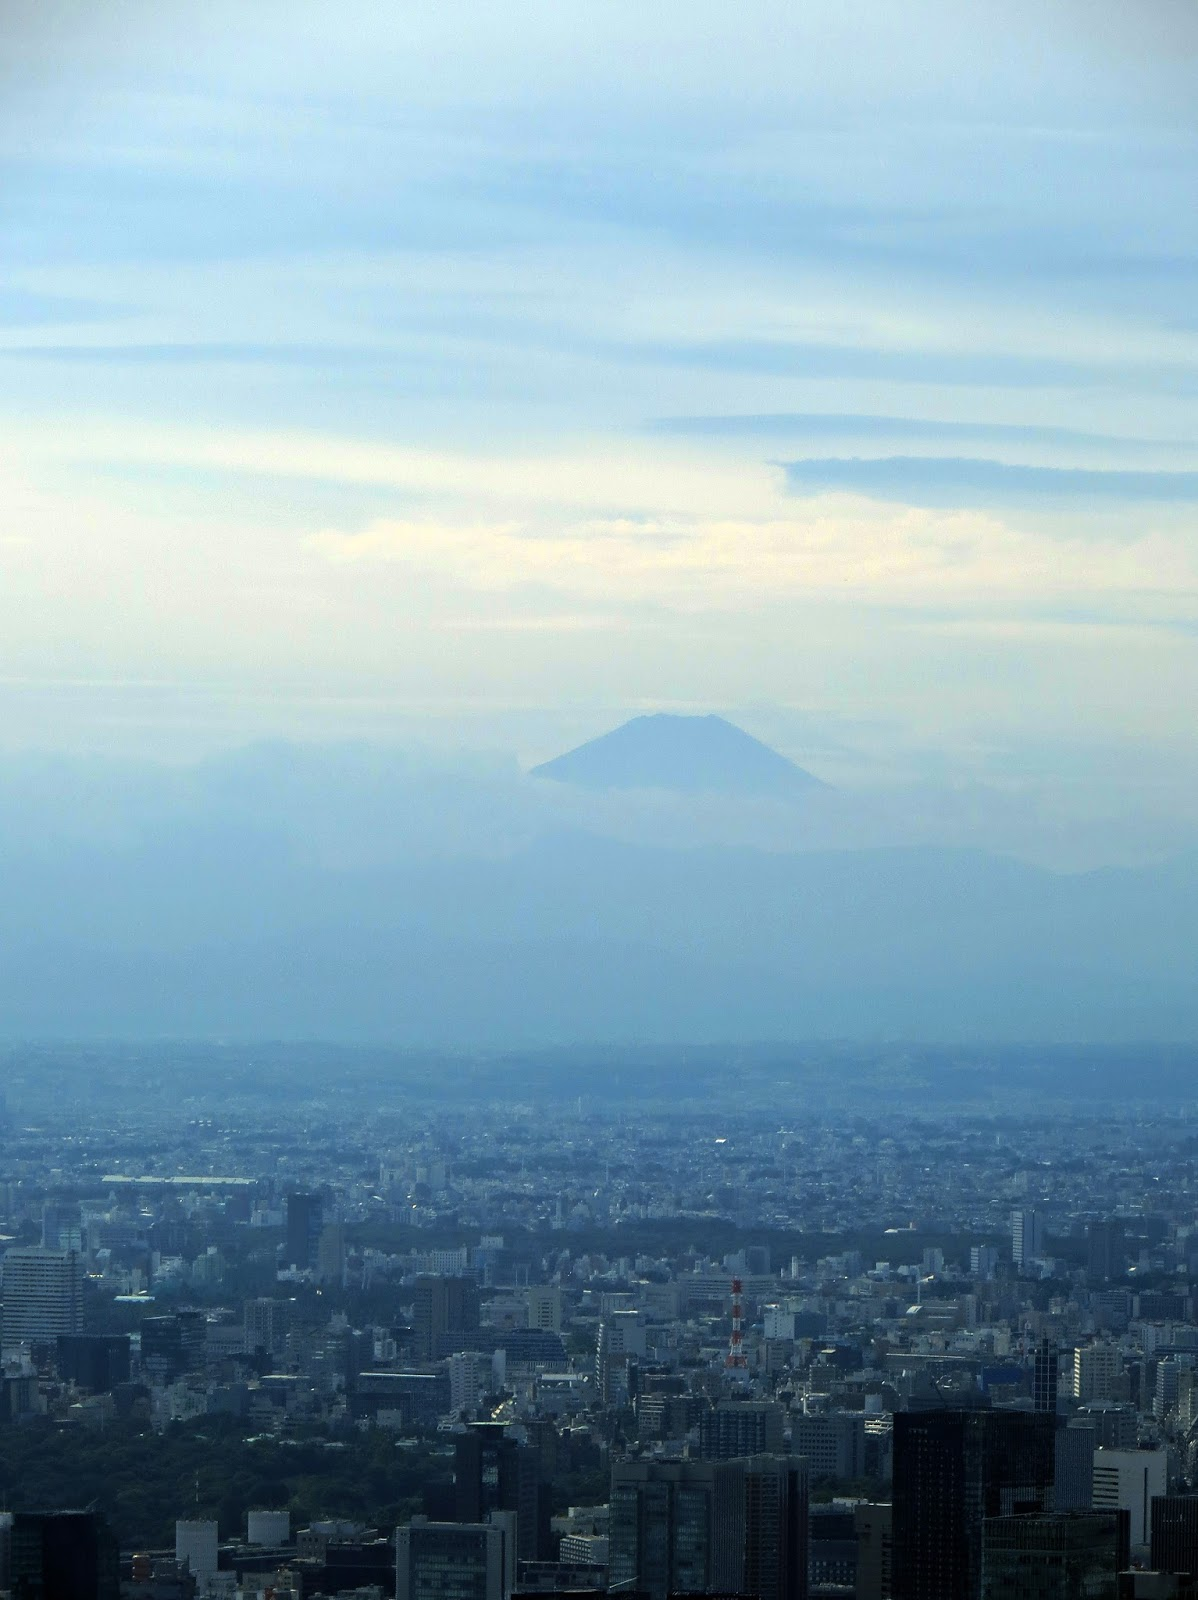 Mt fuji from tokyo Skytree, tower, city center, view, must do tokyo